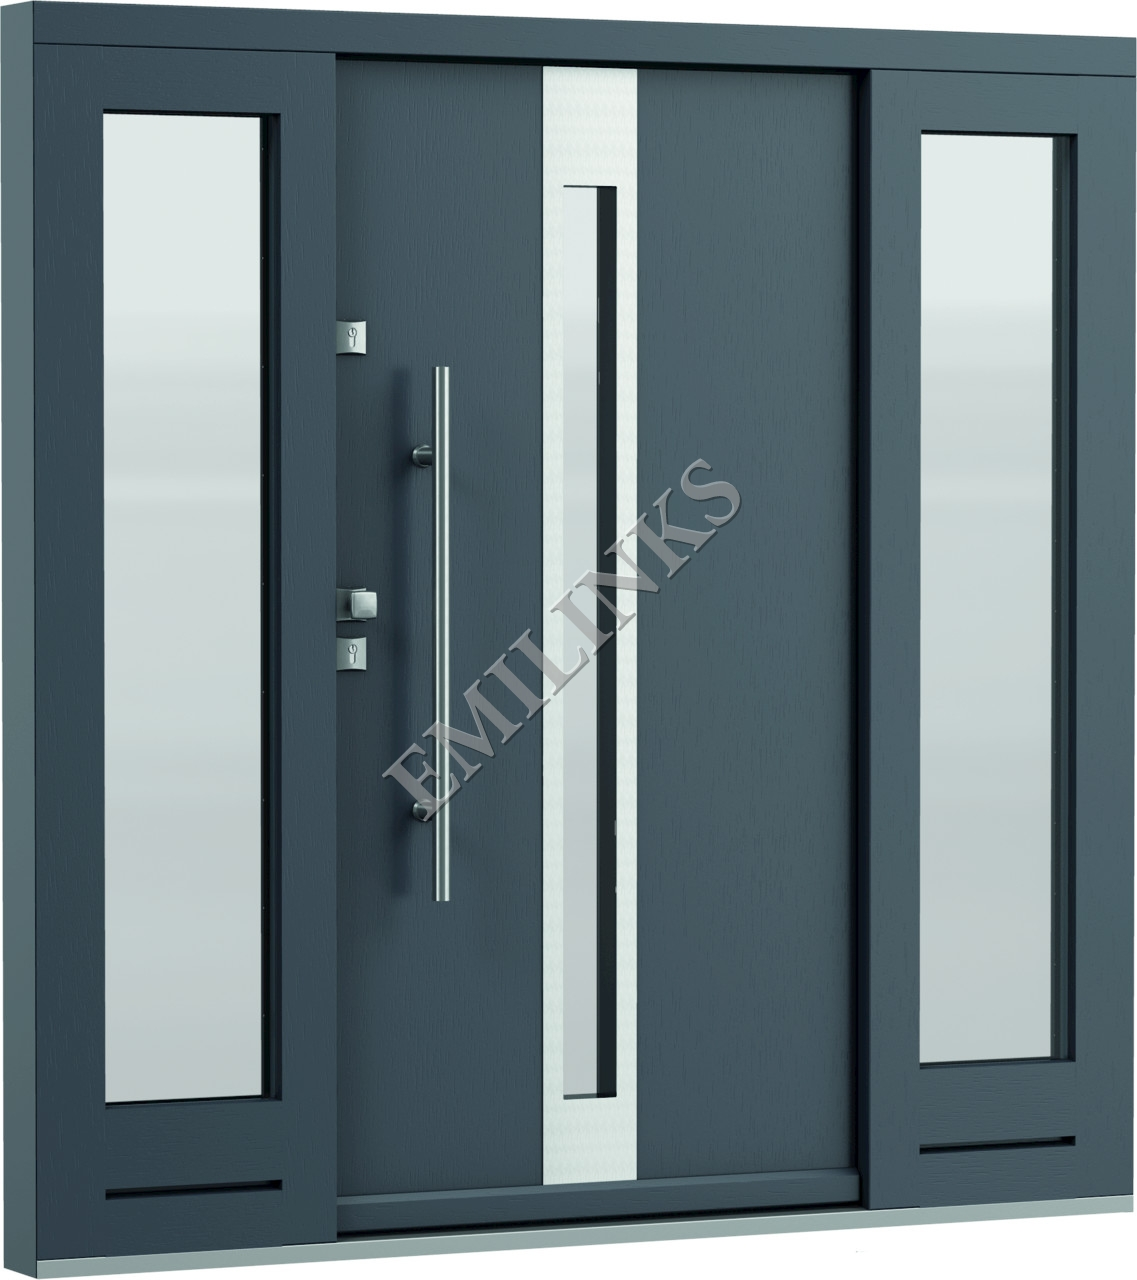 Emilinks Security Doors in Nigeria - EMI-SD1506025